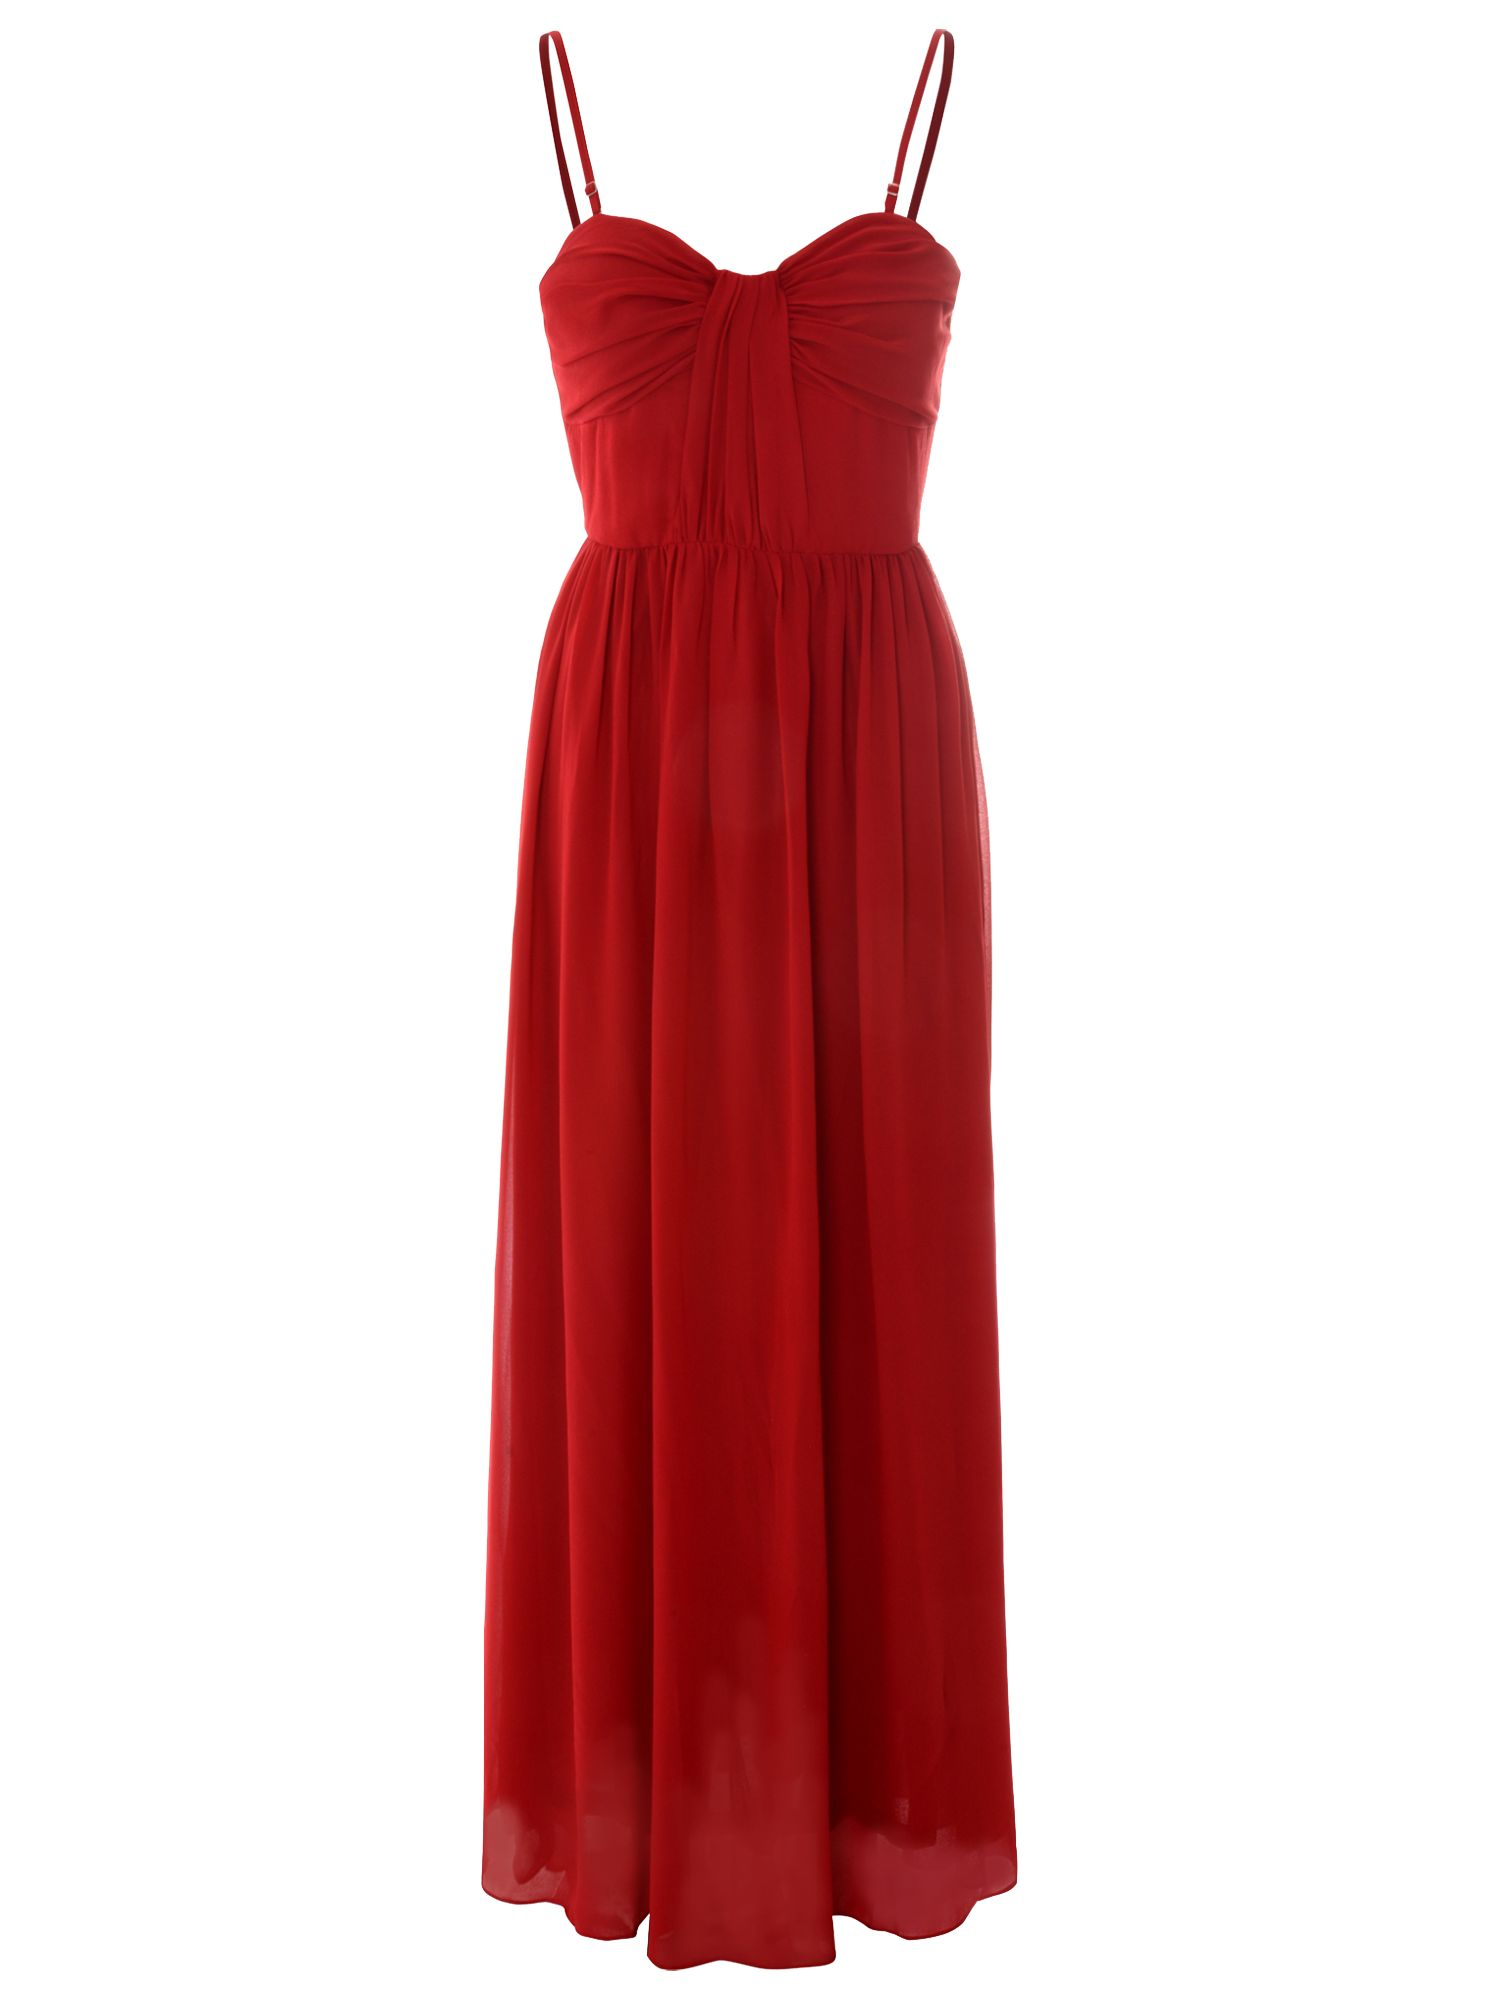 true decadence bow pleat maxi dress red, true, decadence, bow, pleat, maxi, dress, red, true decadence, 8 12 18 10 16 14, women, womens dresses, gifts, valentines day, red dress, 1619232